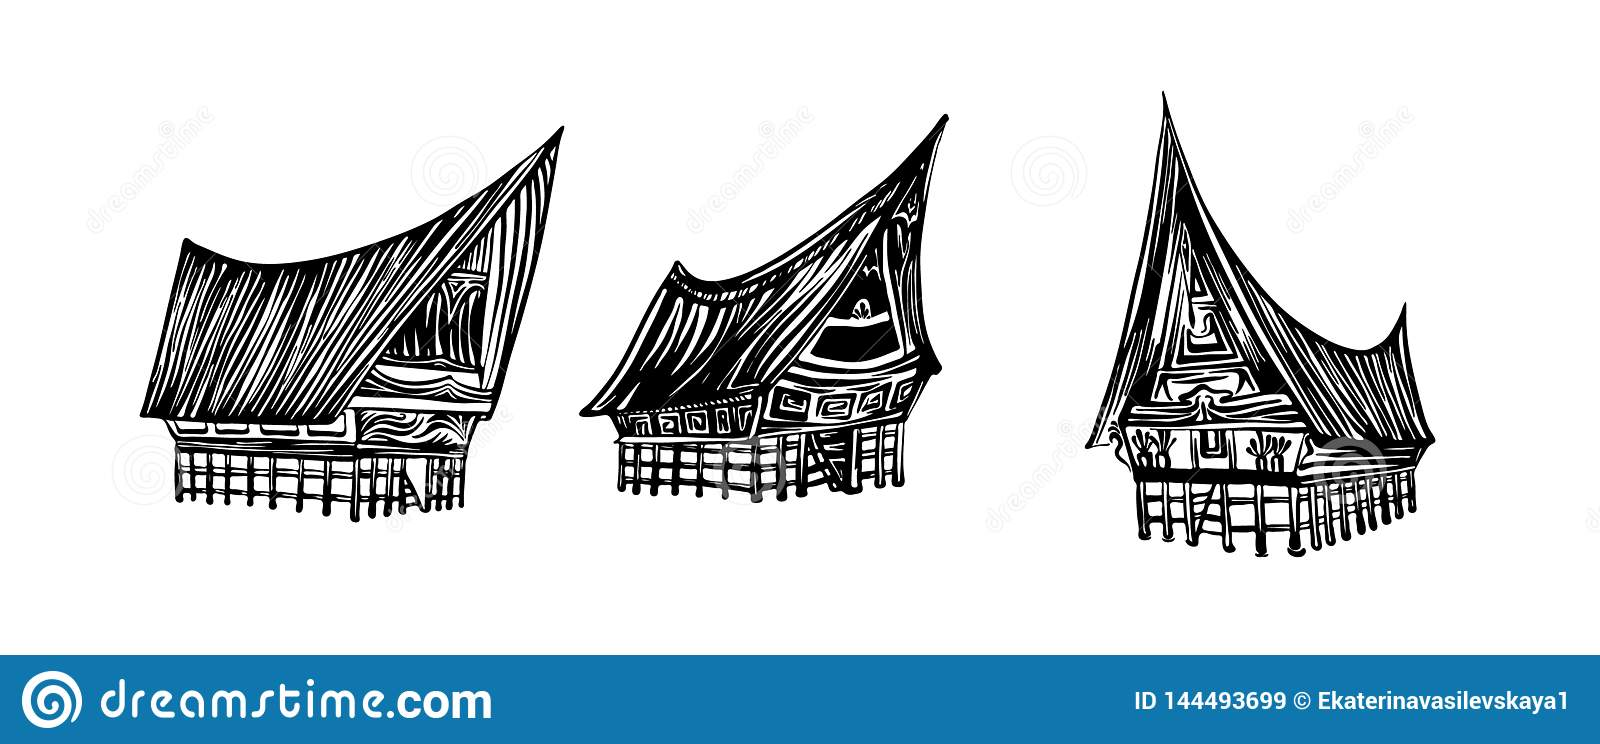 indonesian traditional batak house set hand drawn outline sketch vector black ink drawing isolated on white background graphic stock vector illustration of architecture indonesian 144493699 https www dreamstime com indonesian traditional batak house set hand drawn outline sketch vector black ink drawing isolated white background graphic image144493699